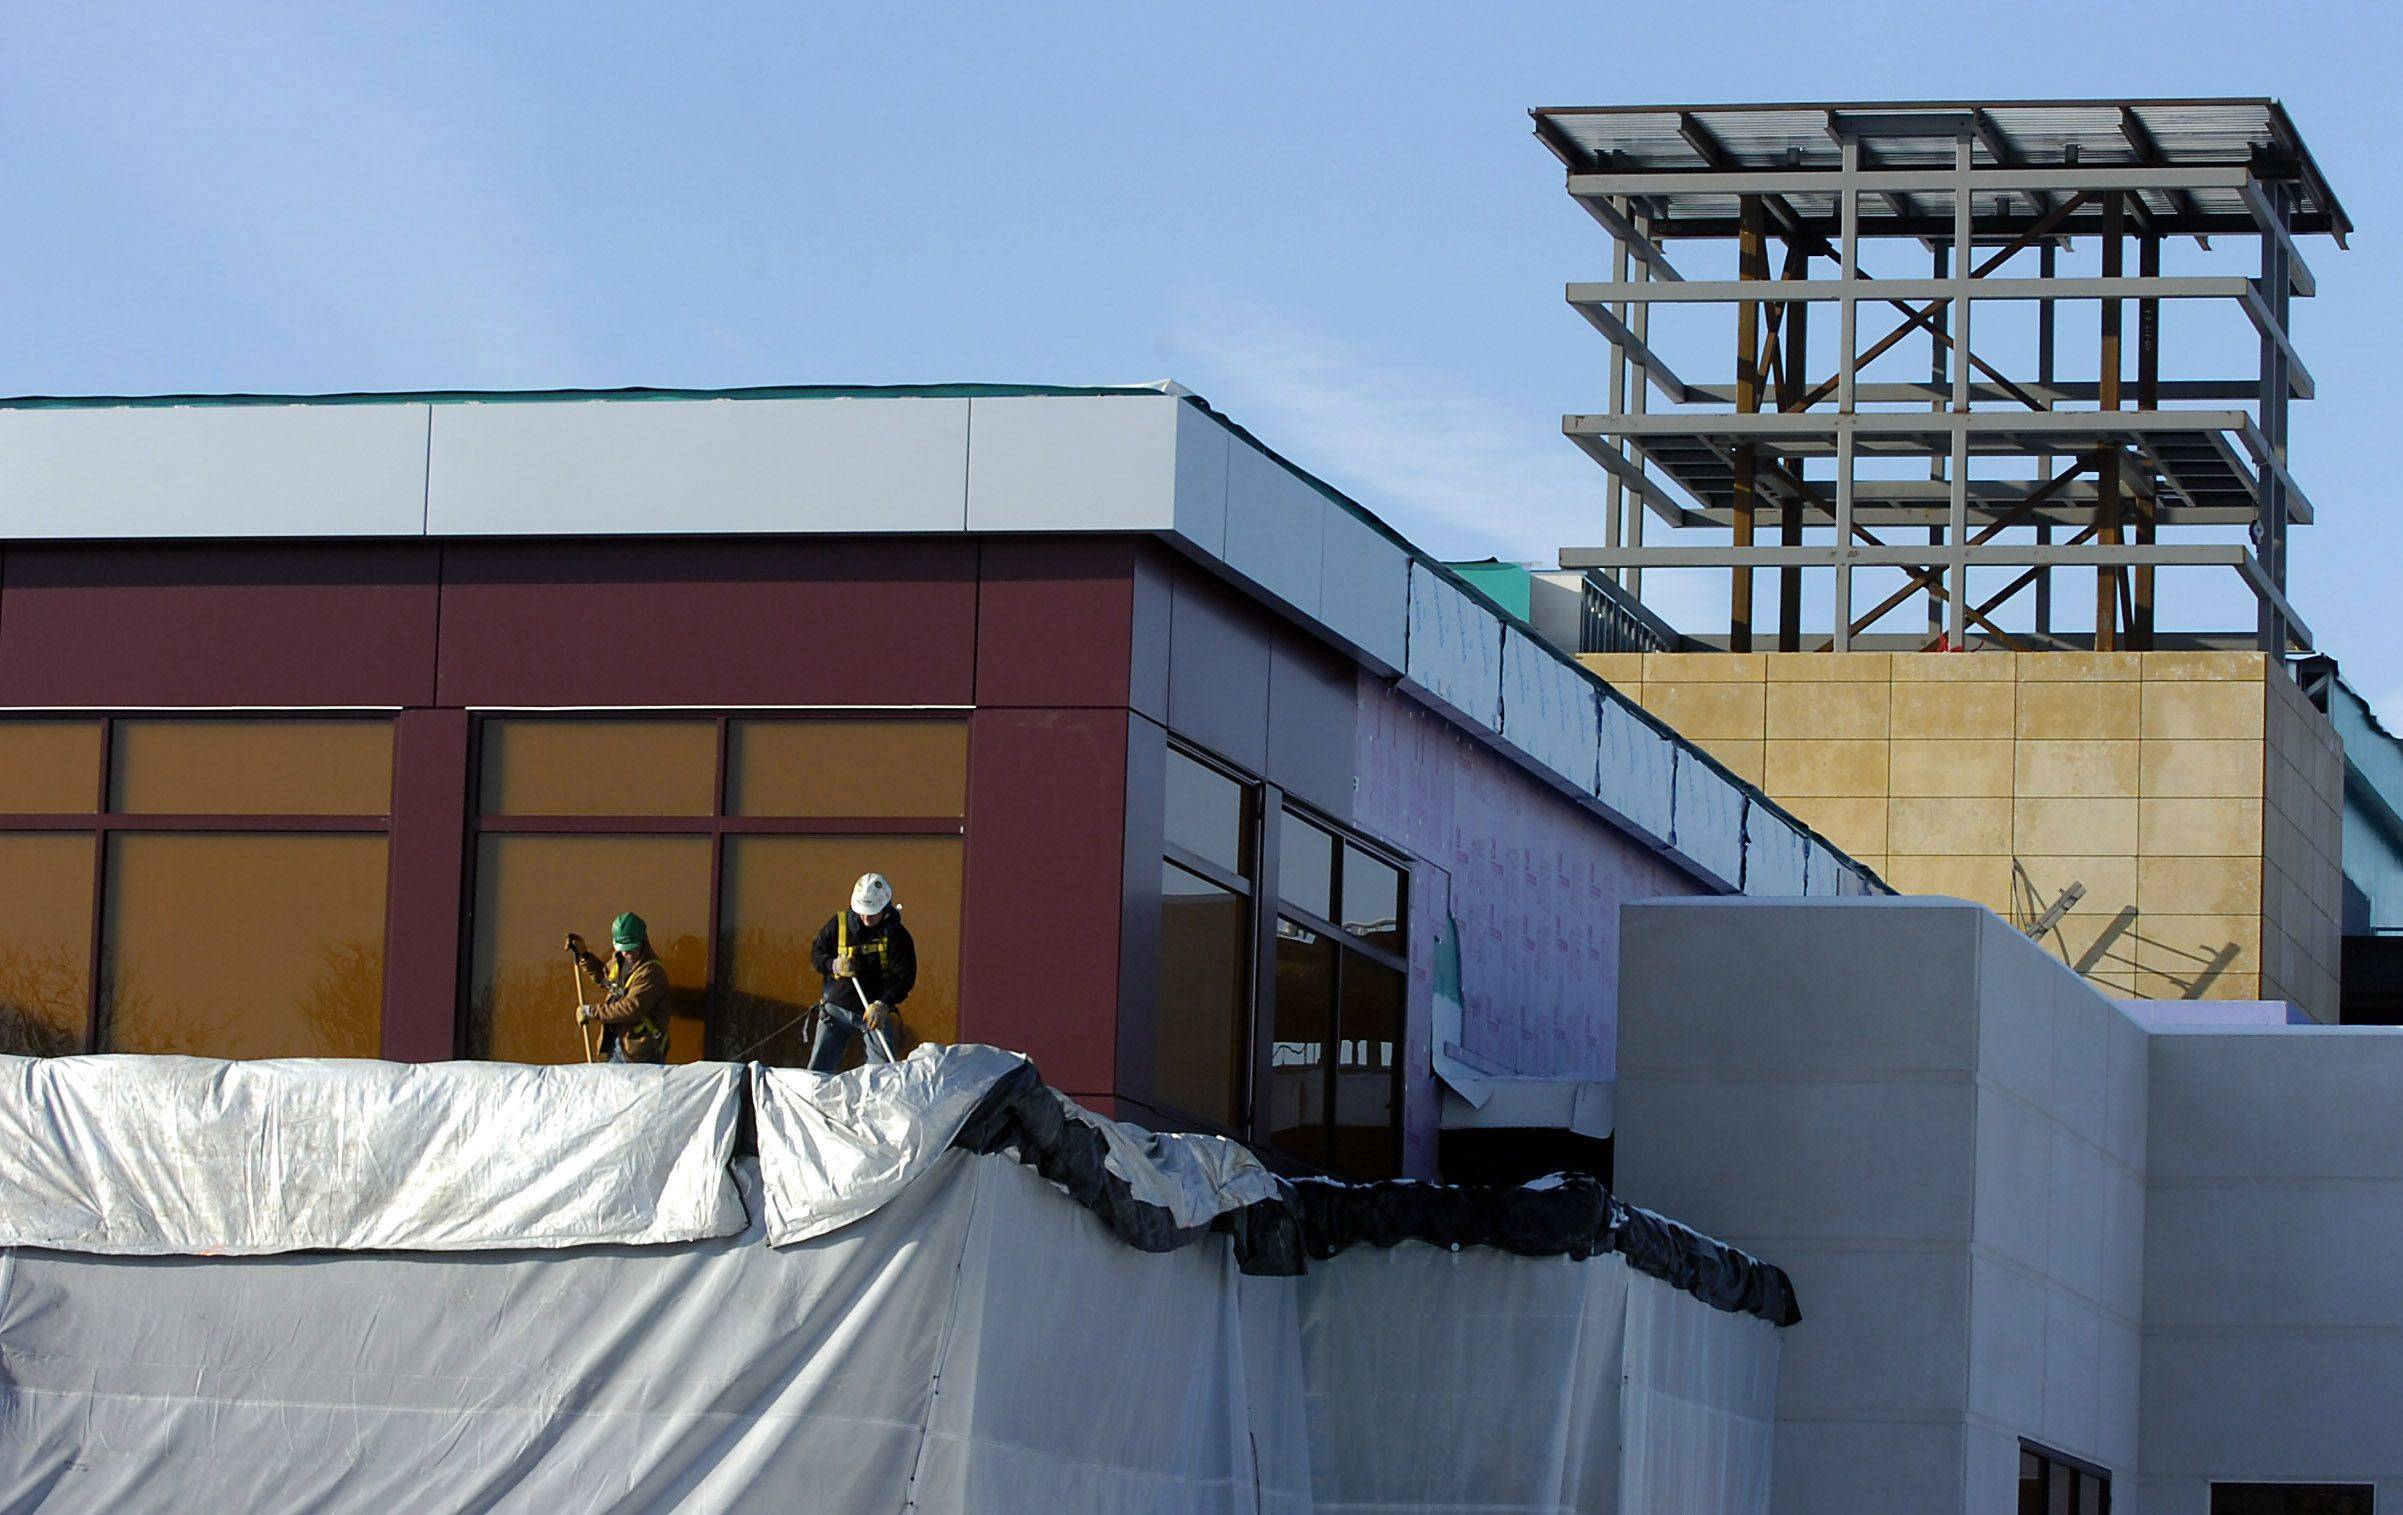 Workers sweep off one of the decks at the new Des Plaines casino under construction along River Road.